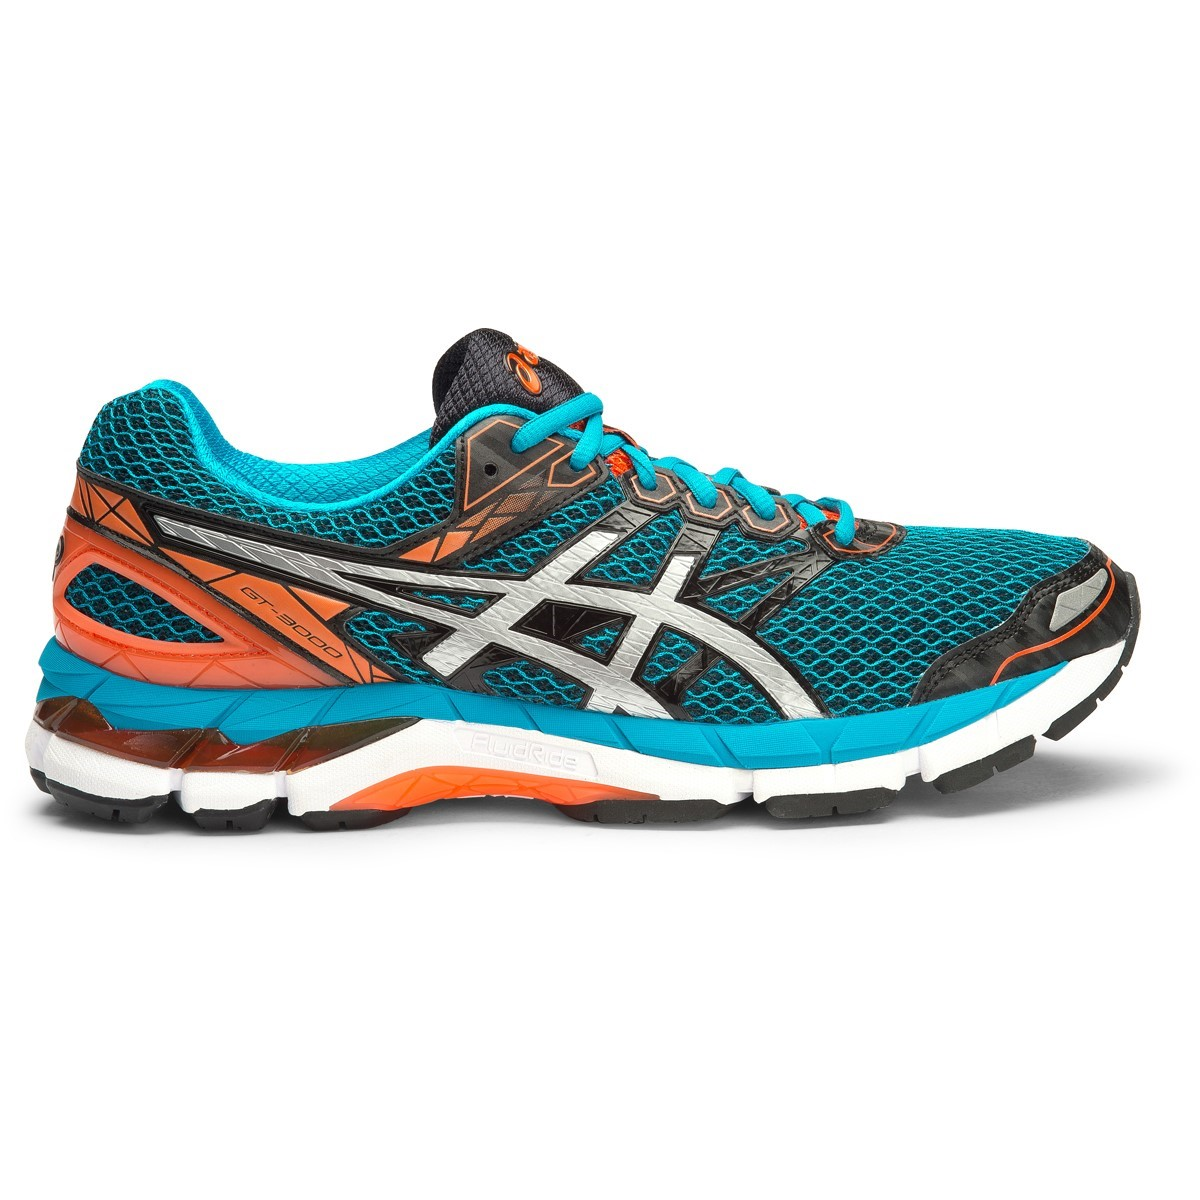 asics gt 3000 4 mens running shoes black silver blue. Black Bedroom Furniture Sets. Home Design Ideas